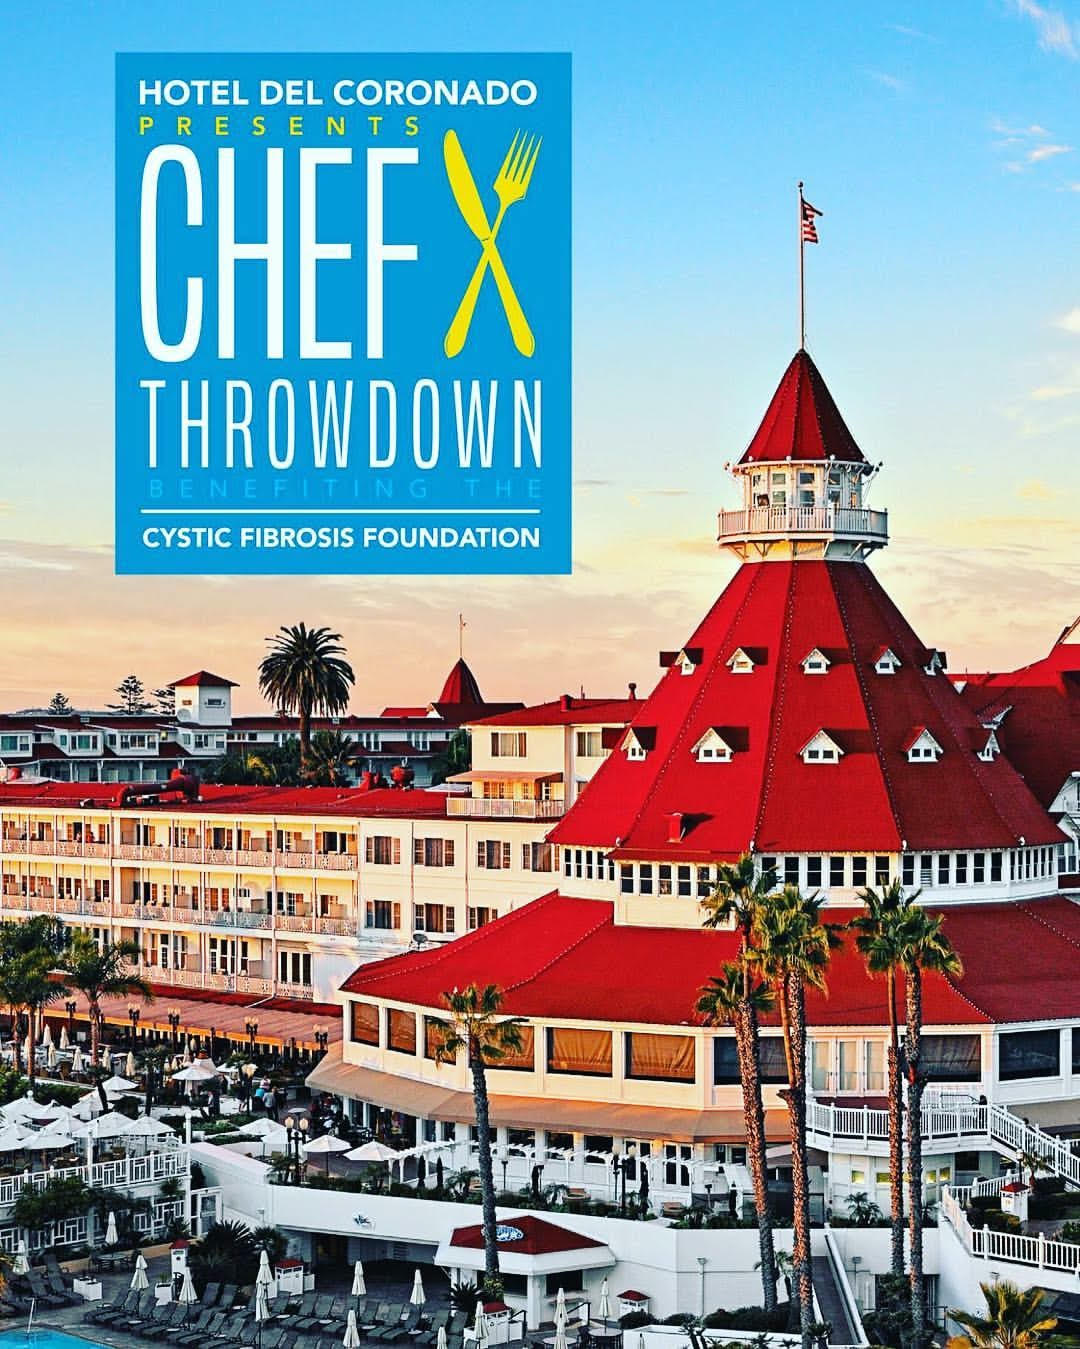 Don't Miss Chef Throwdown at Hotel Del Coronado on September 22!